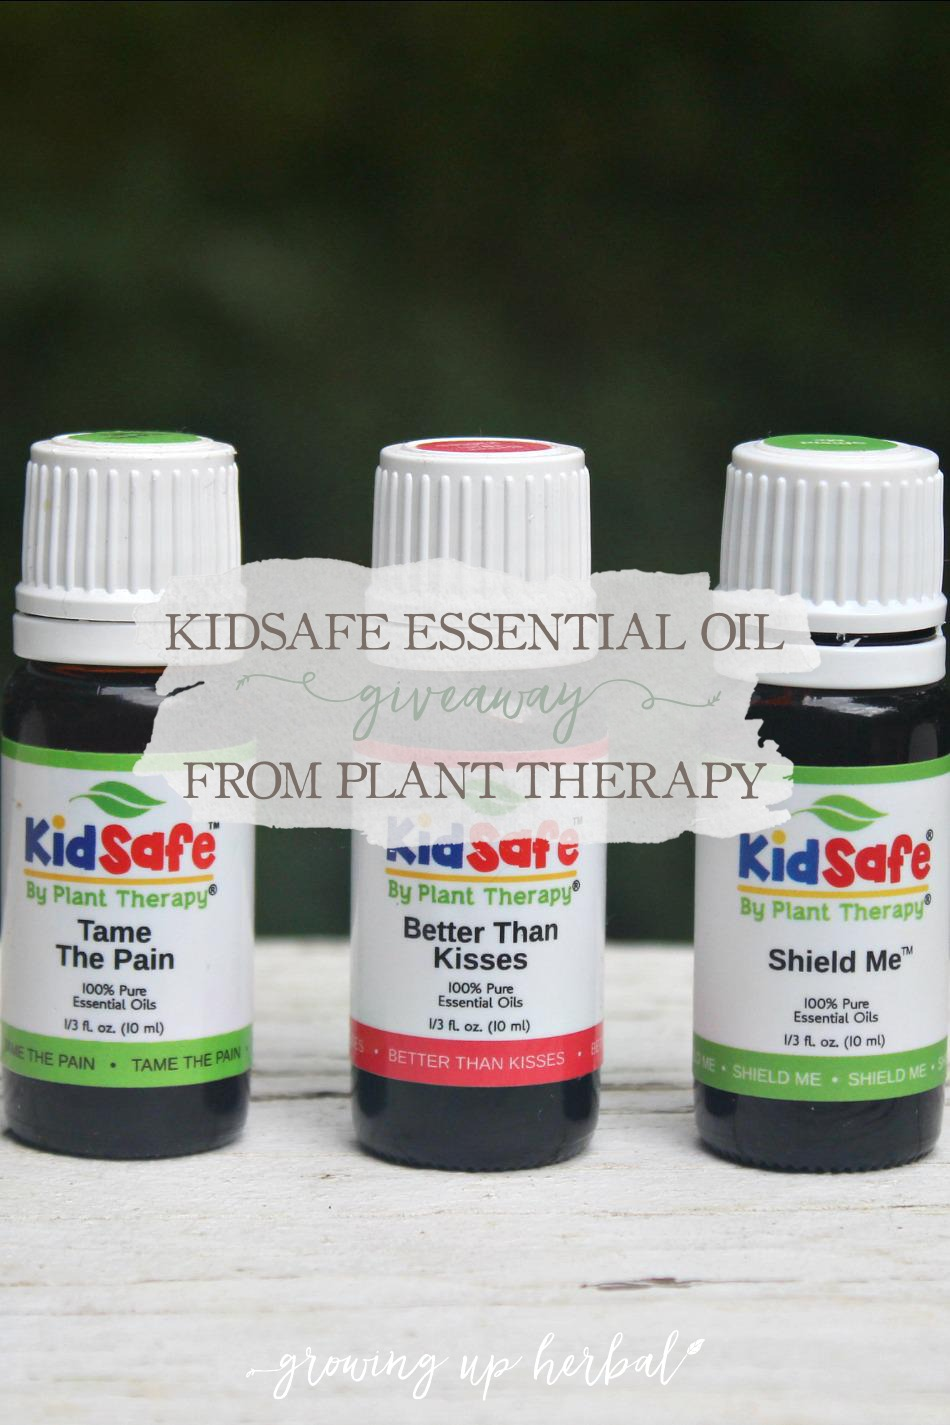 KidSafe Essential Oil Giveaway From Plant Therapy | Growing Up Herbal | Win some oils to use safely on your kiddos, mama! Enter today!